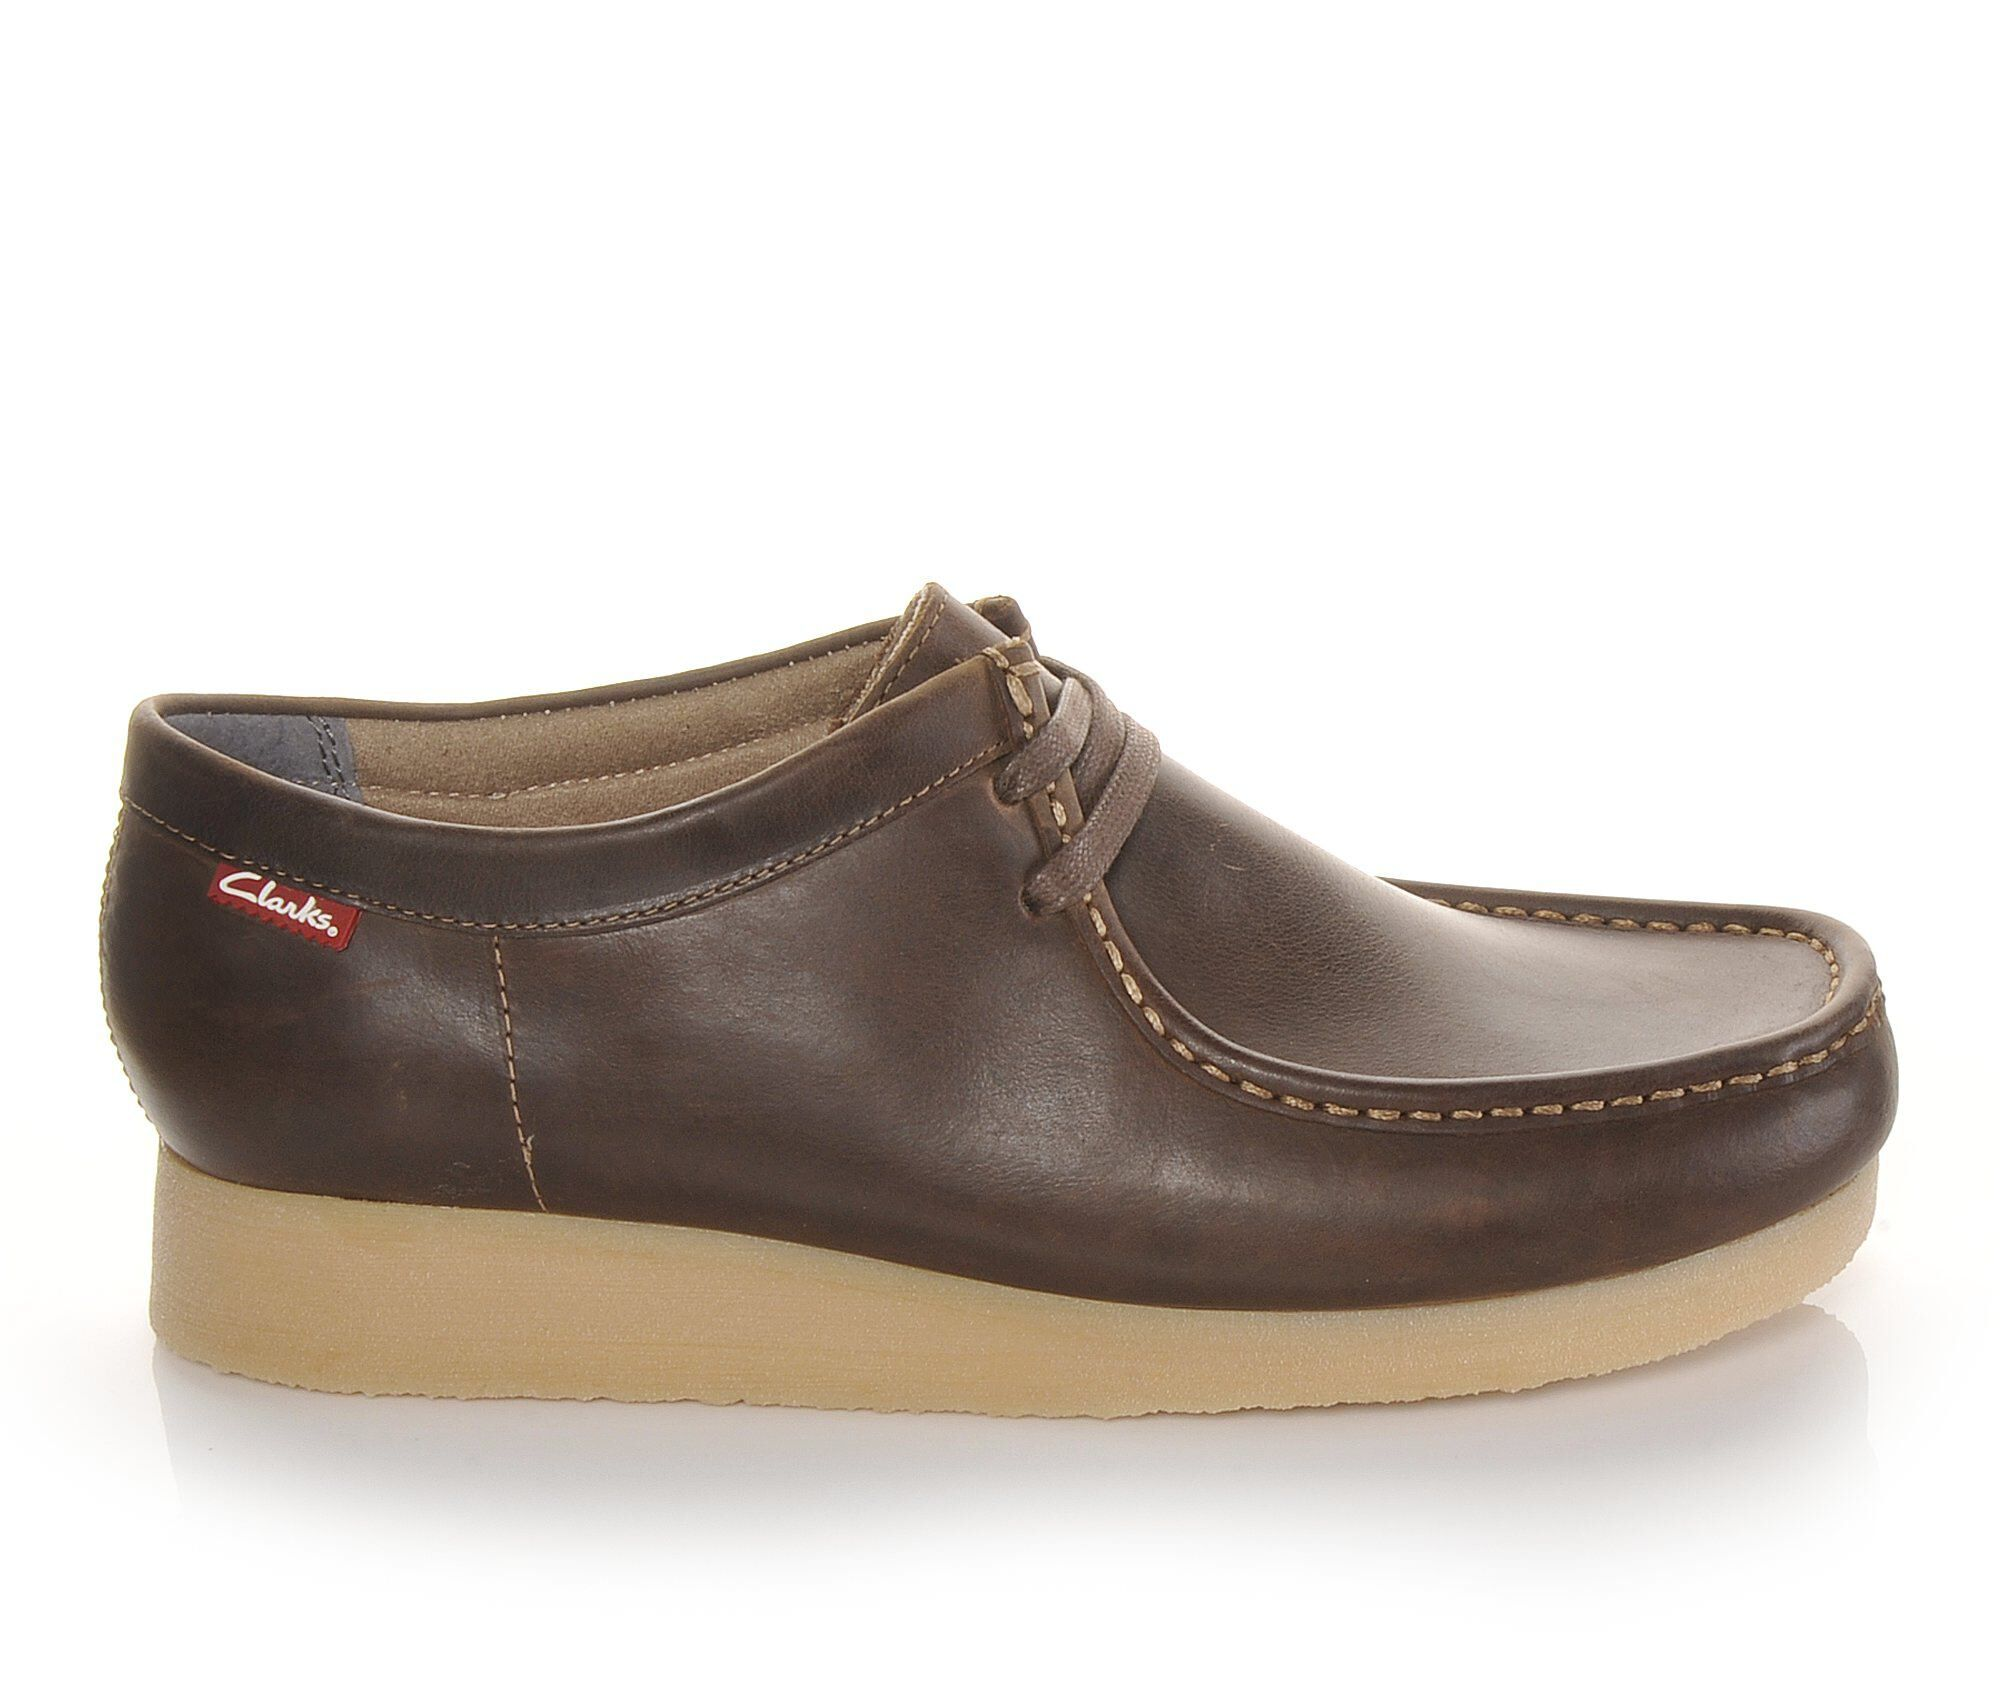 Clarks Stinson Lo Lace-up Floery